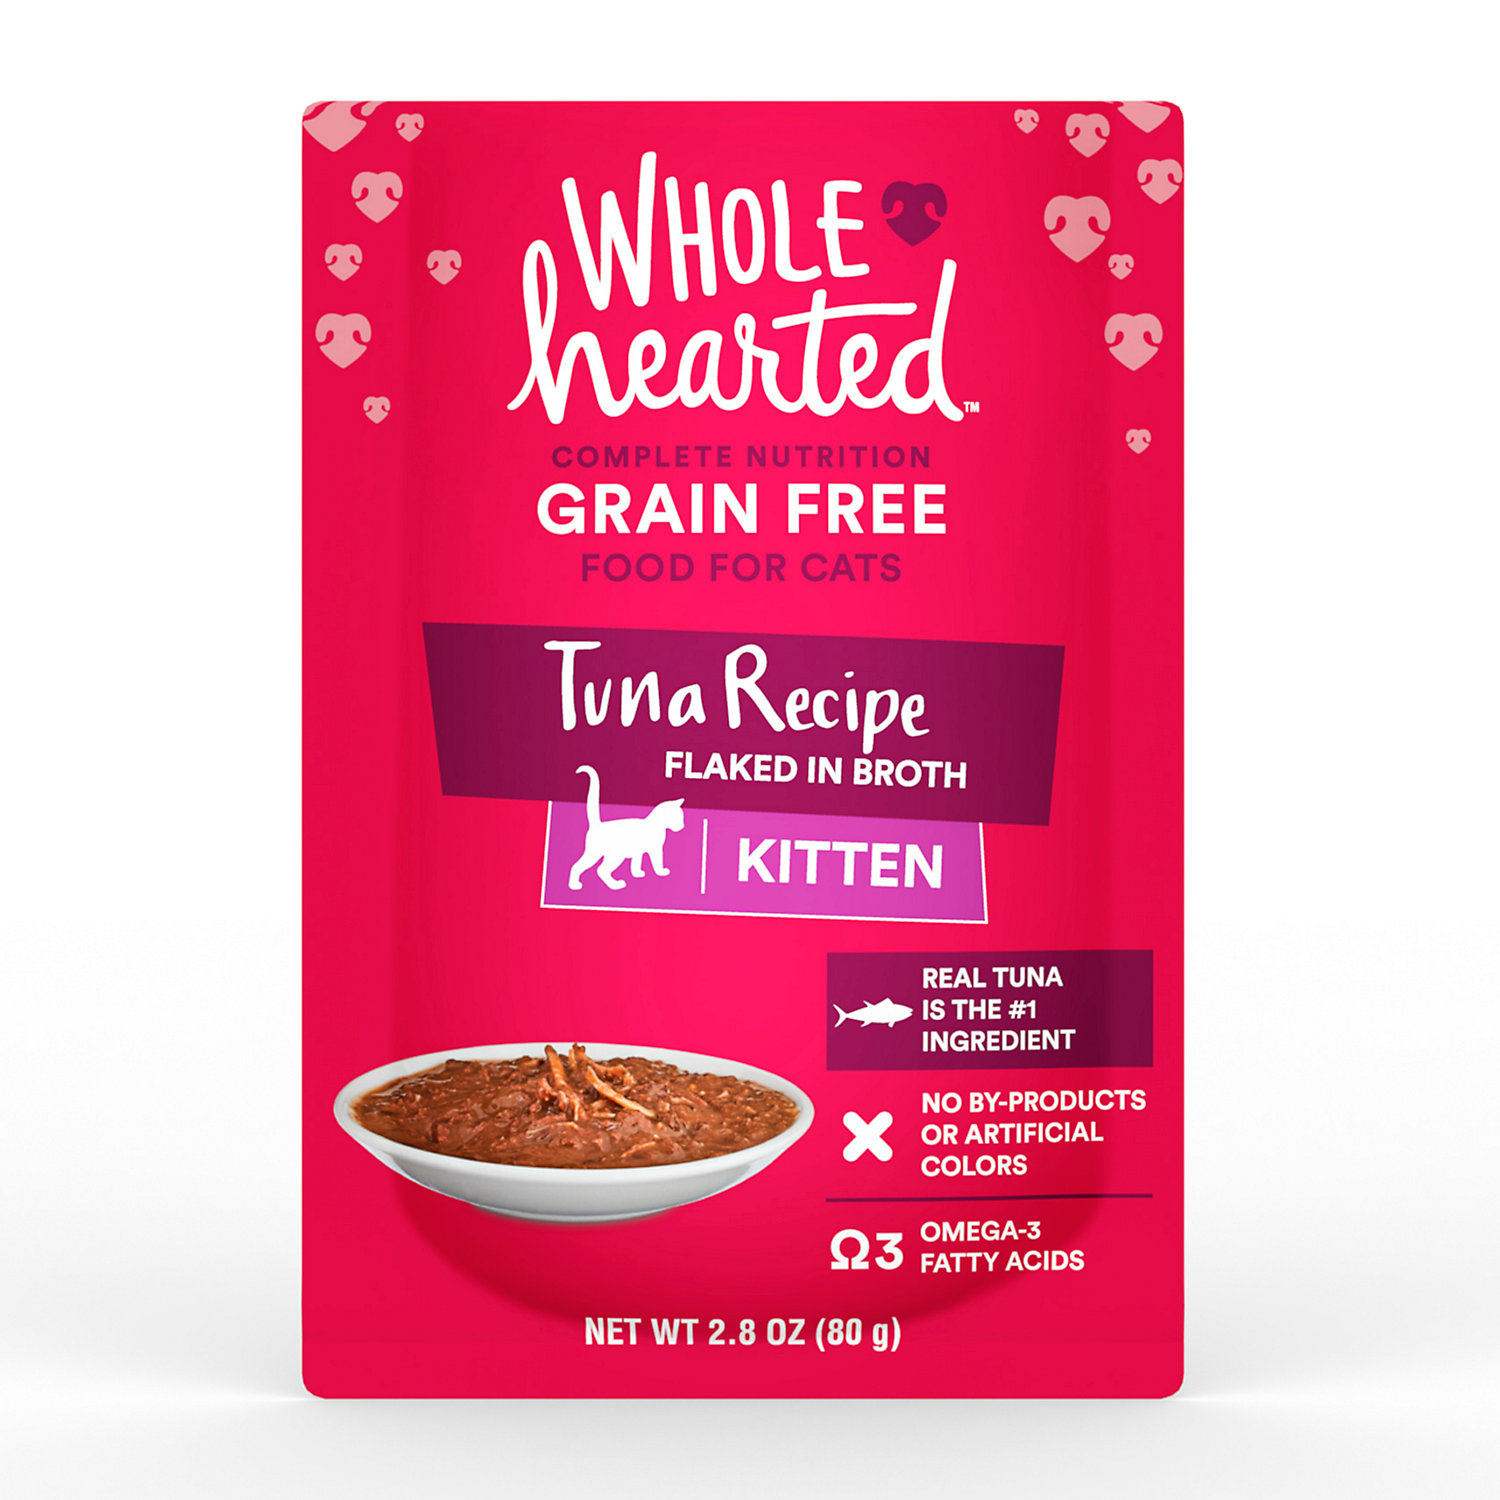 WholeHearted Grain Free Tuna Recipe Flaked In Broth Wet Kitten Food - $6.00